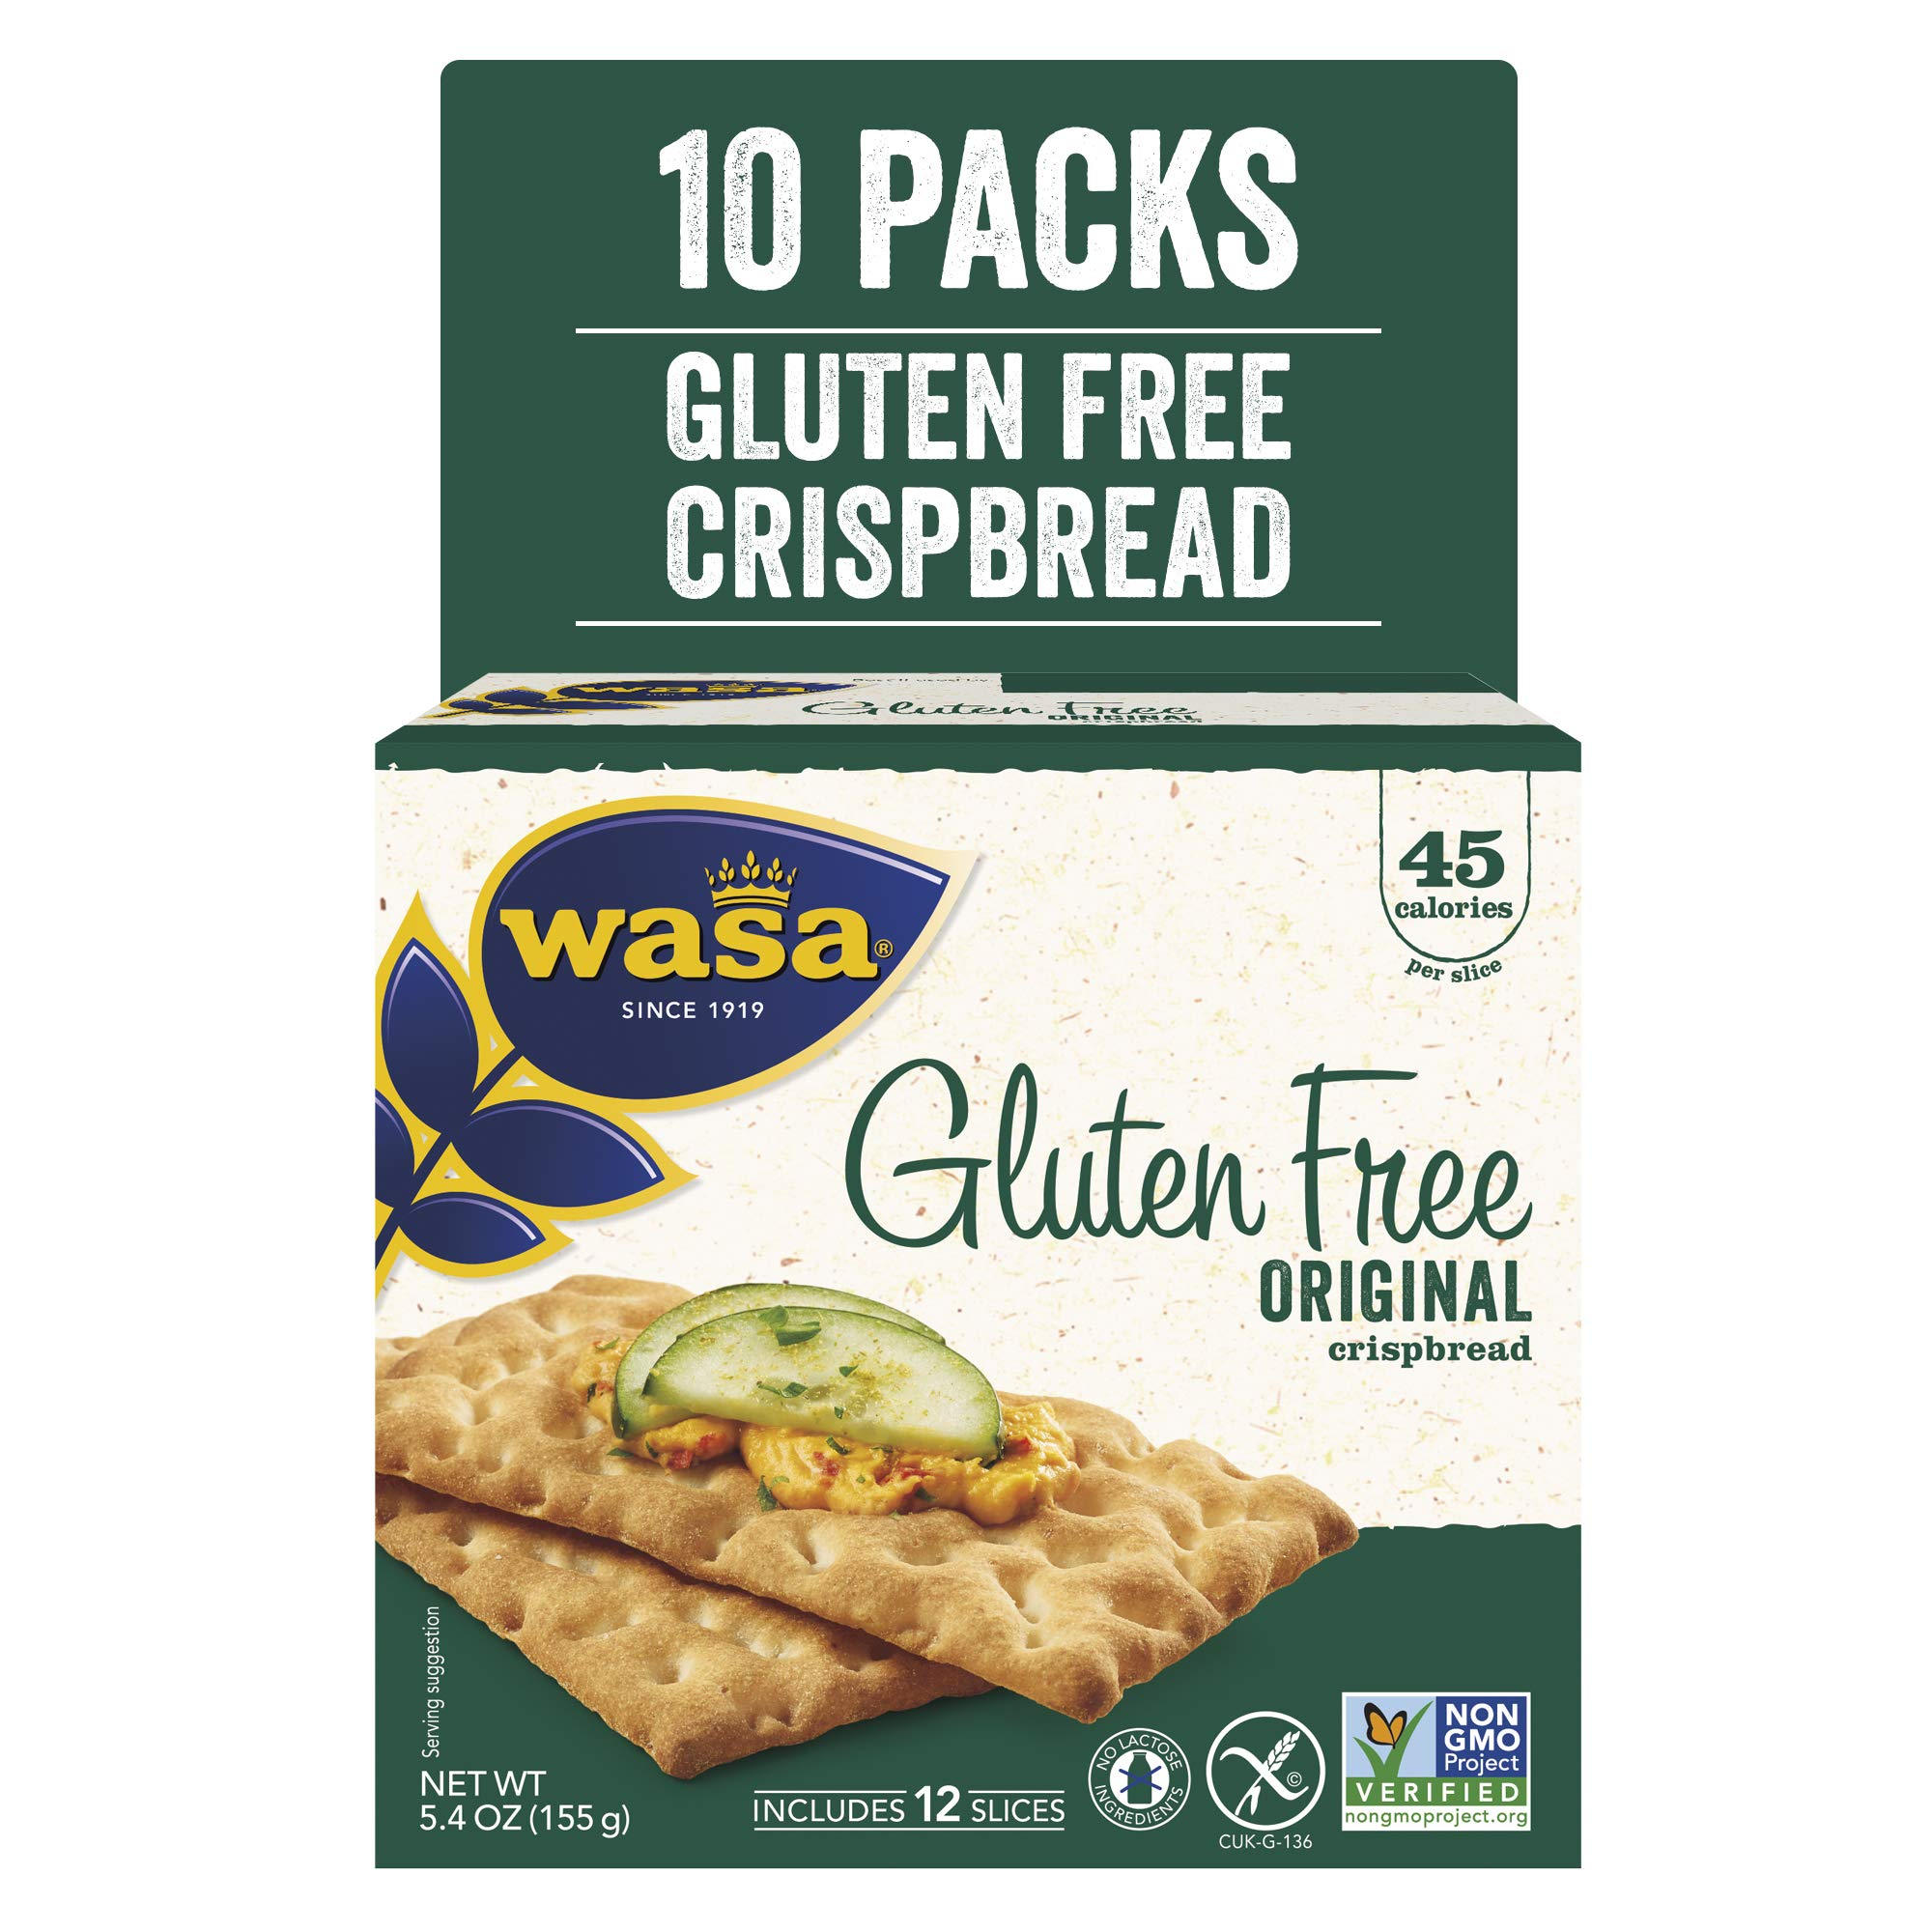 Wasa Gluten Free Original Crispbread, 5.4 Ounce (Pack of 10) by Wasa